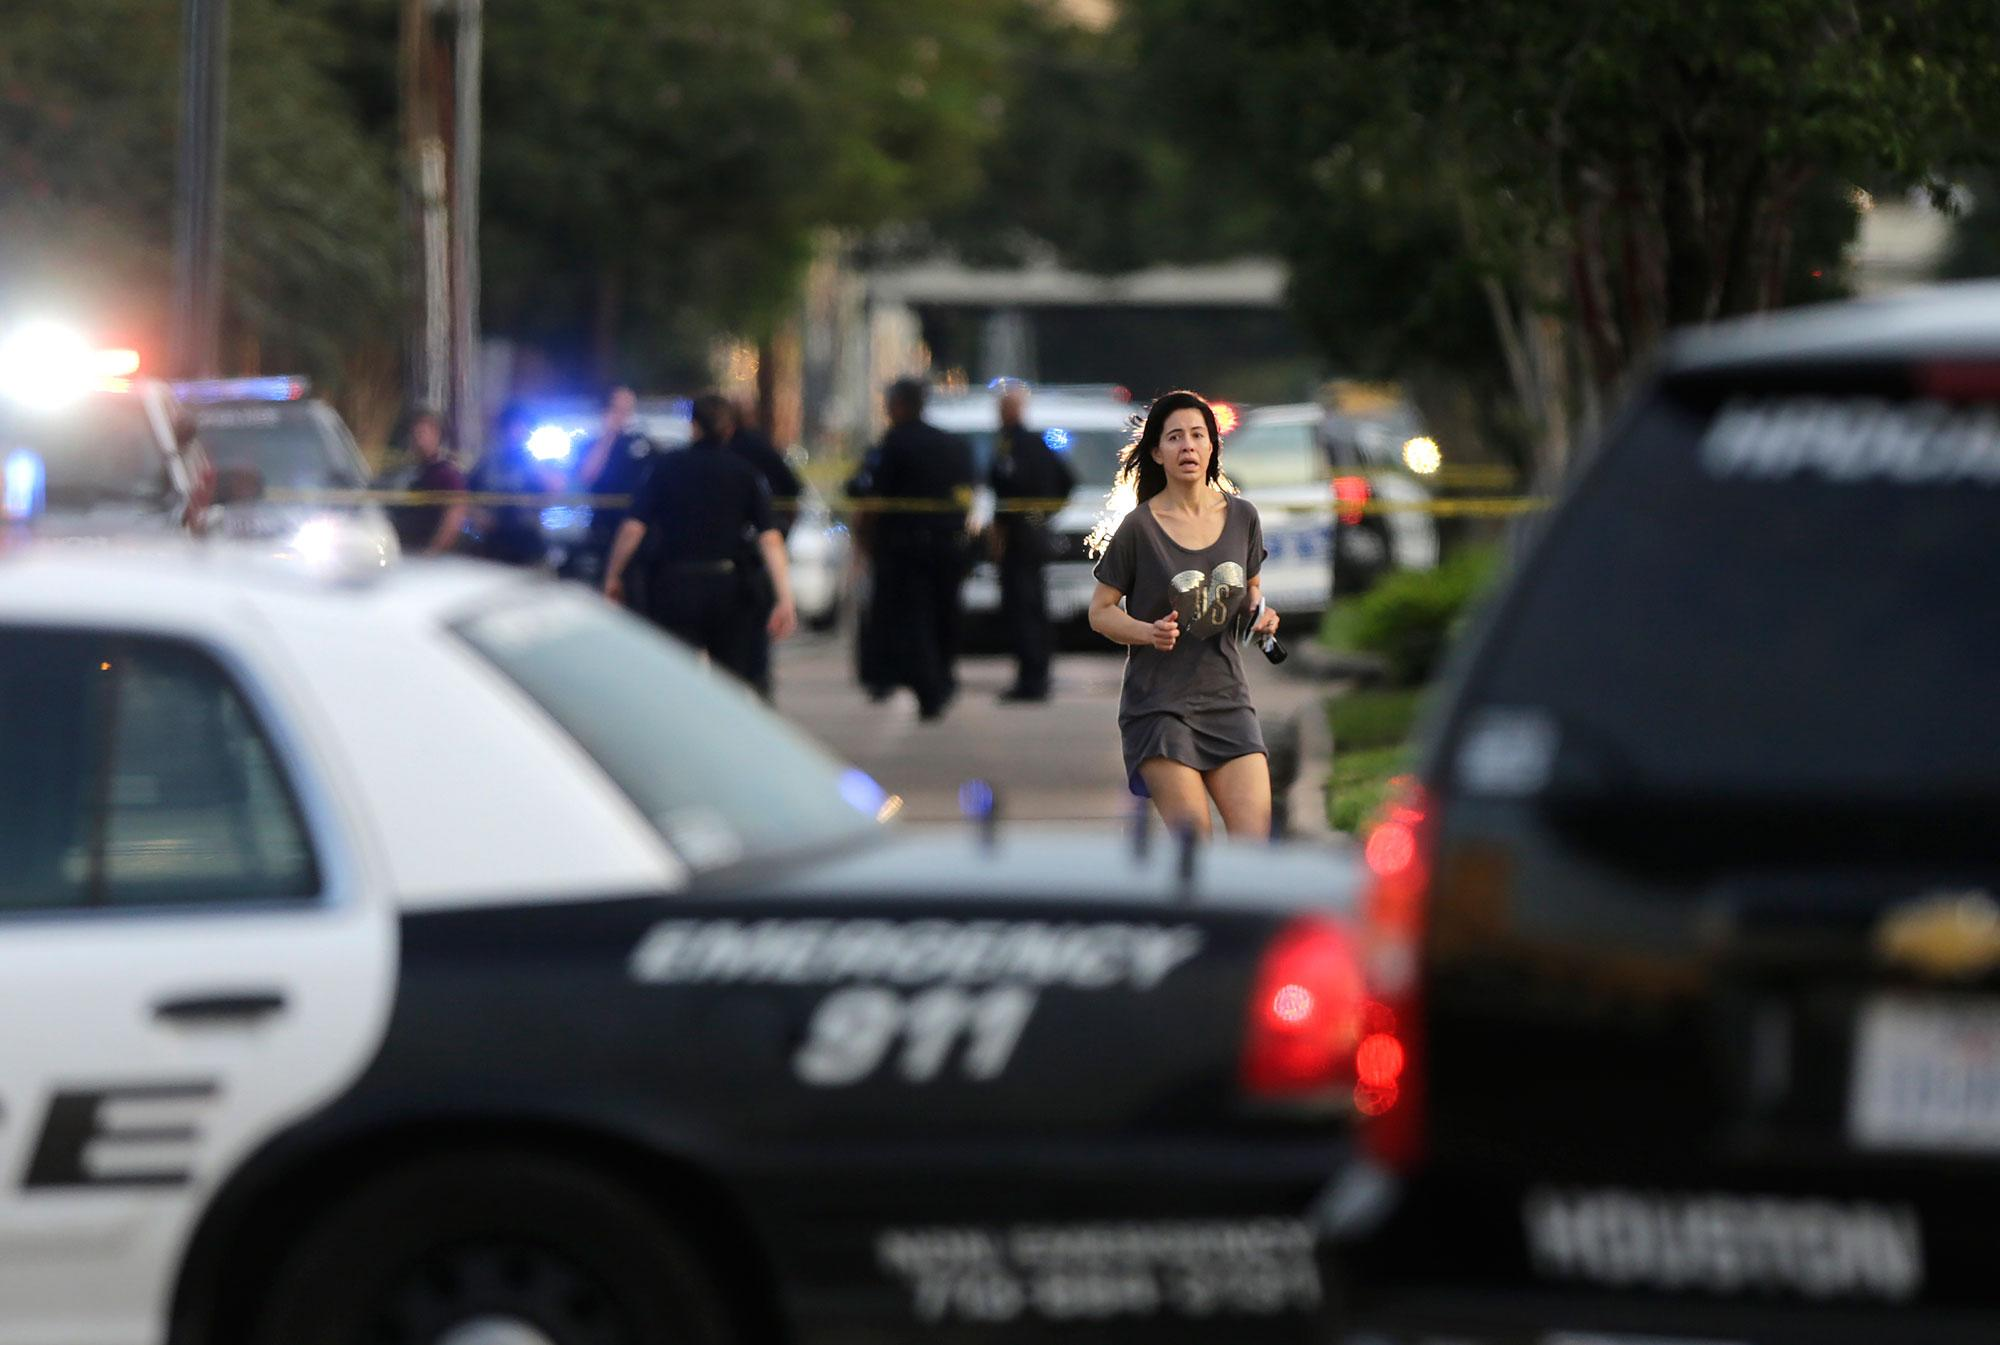 <p>Jennifer Molleda runs down Wesleyan Street in Houston to find her husband, Alan Wakim, who had two bullets whiz by his face after going through his windshield on the way to work along Wesleyan at Law Street in a shooting that left multiple people injured and the alleged shooter dead, Monday morning, Sept. 26, 2016. (Mark Mulligan/Houston Chronicle via AP) </p>